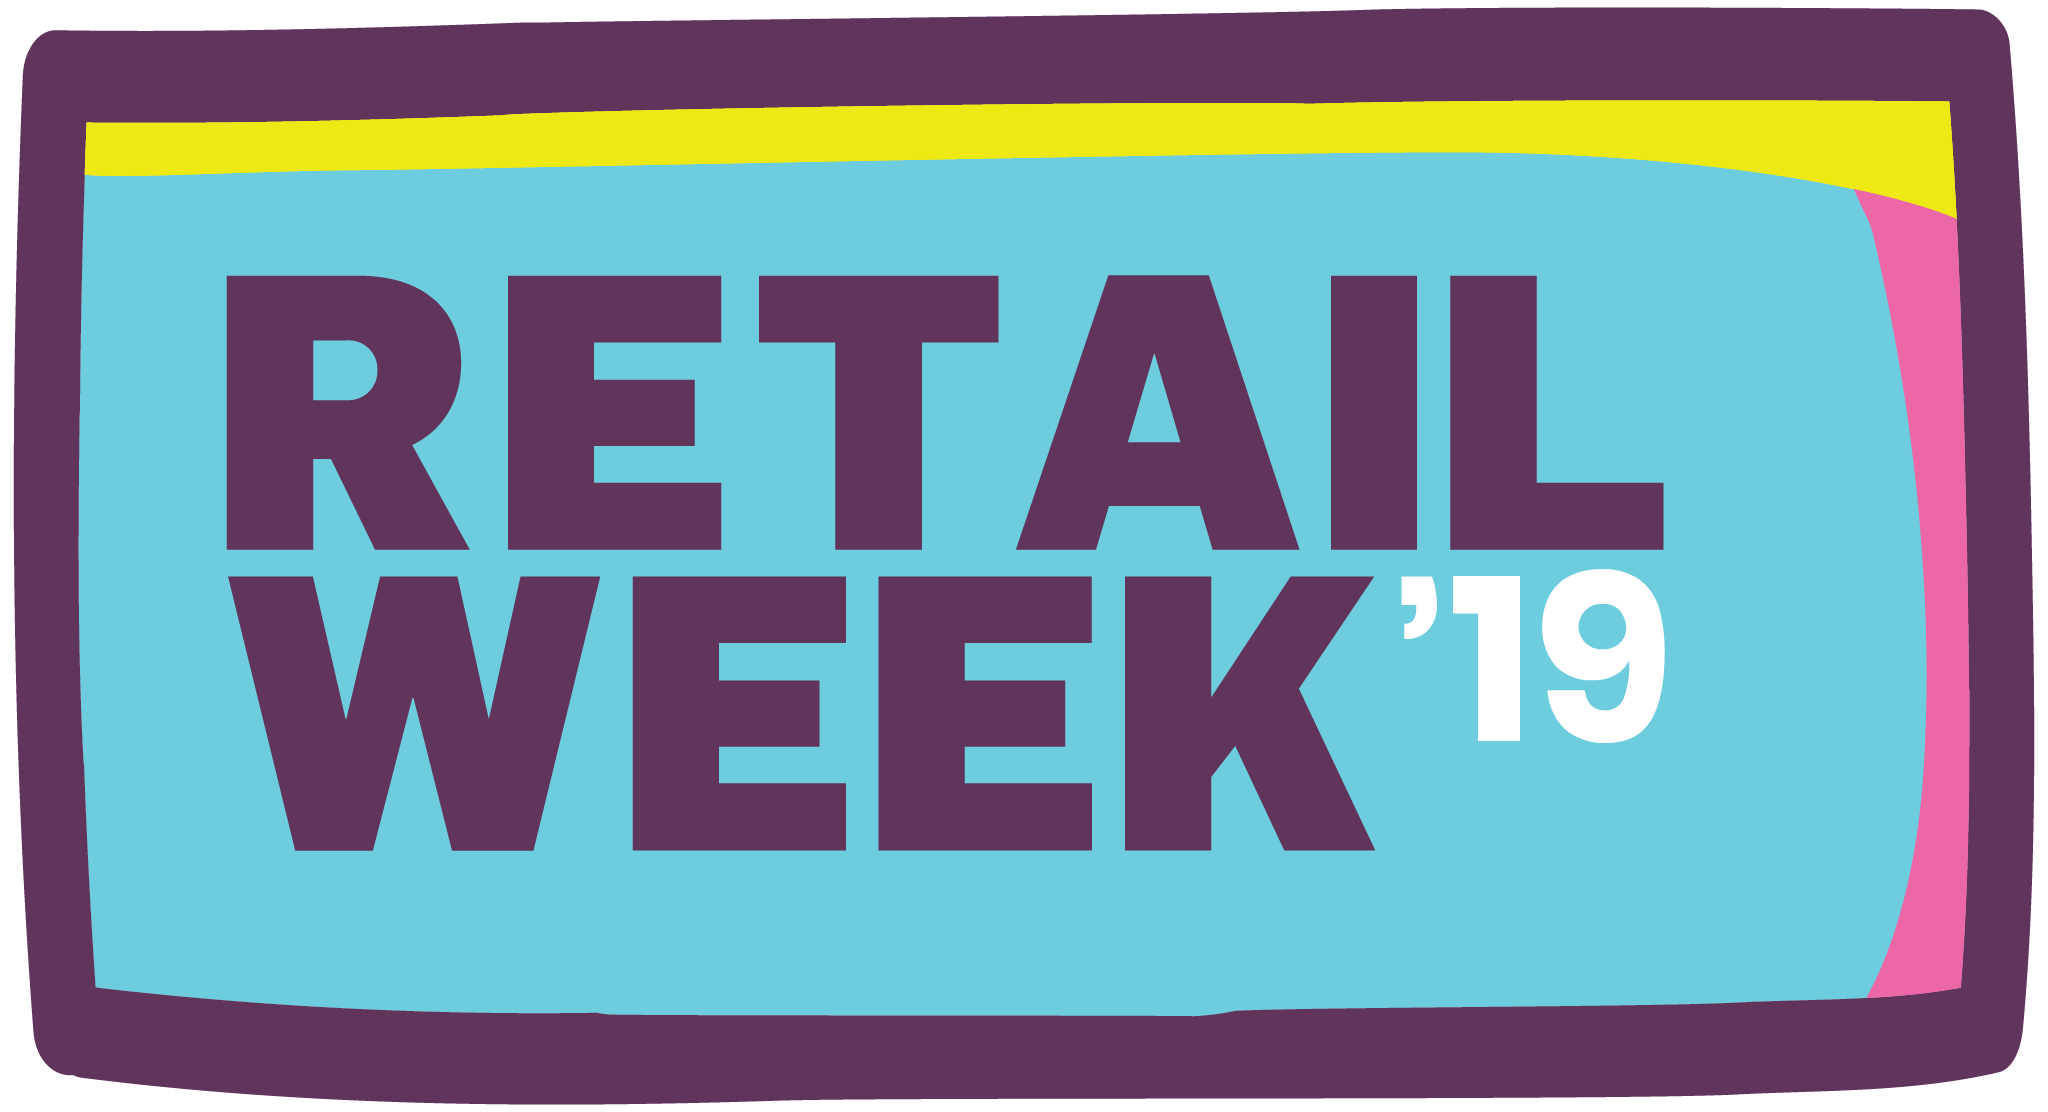 Retail Week logo